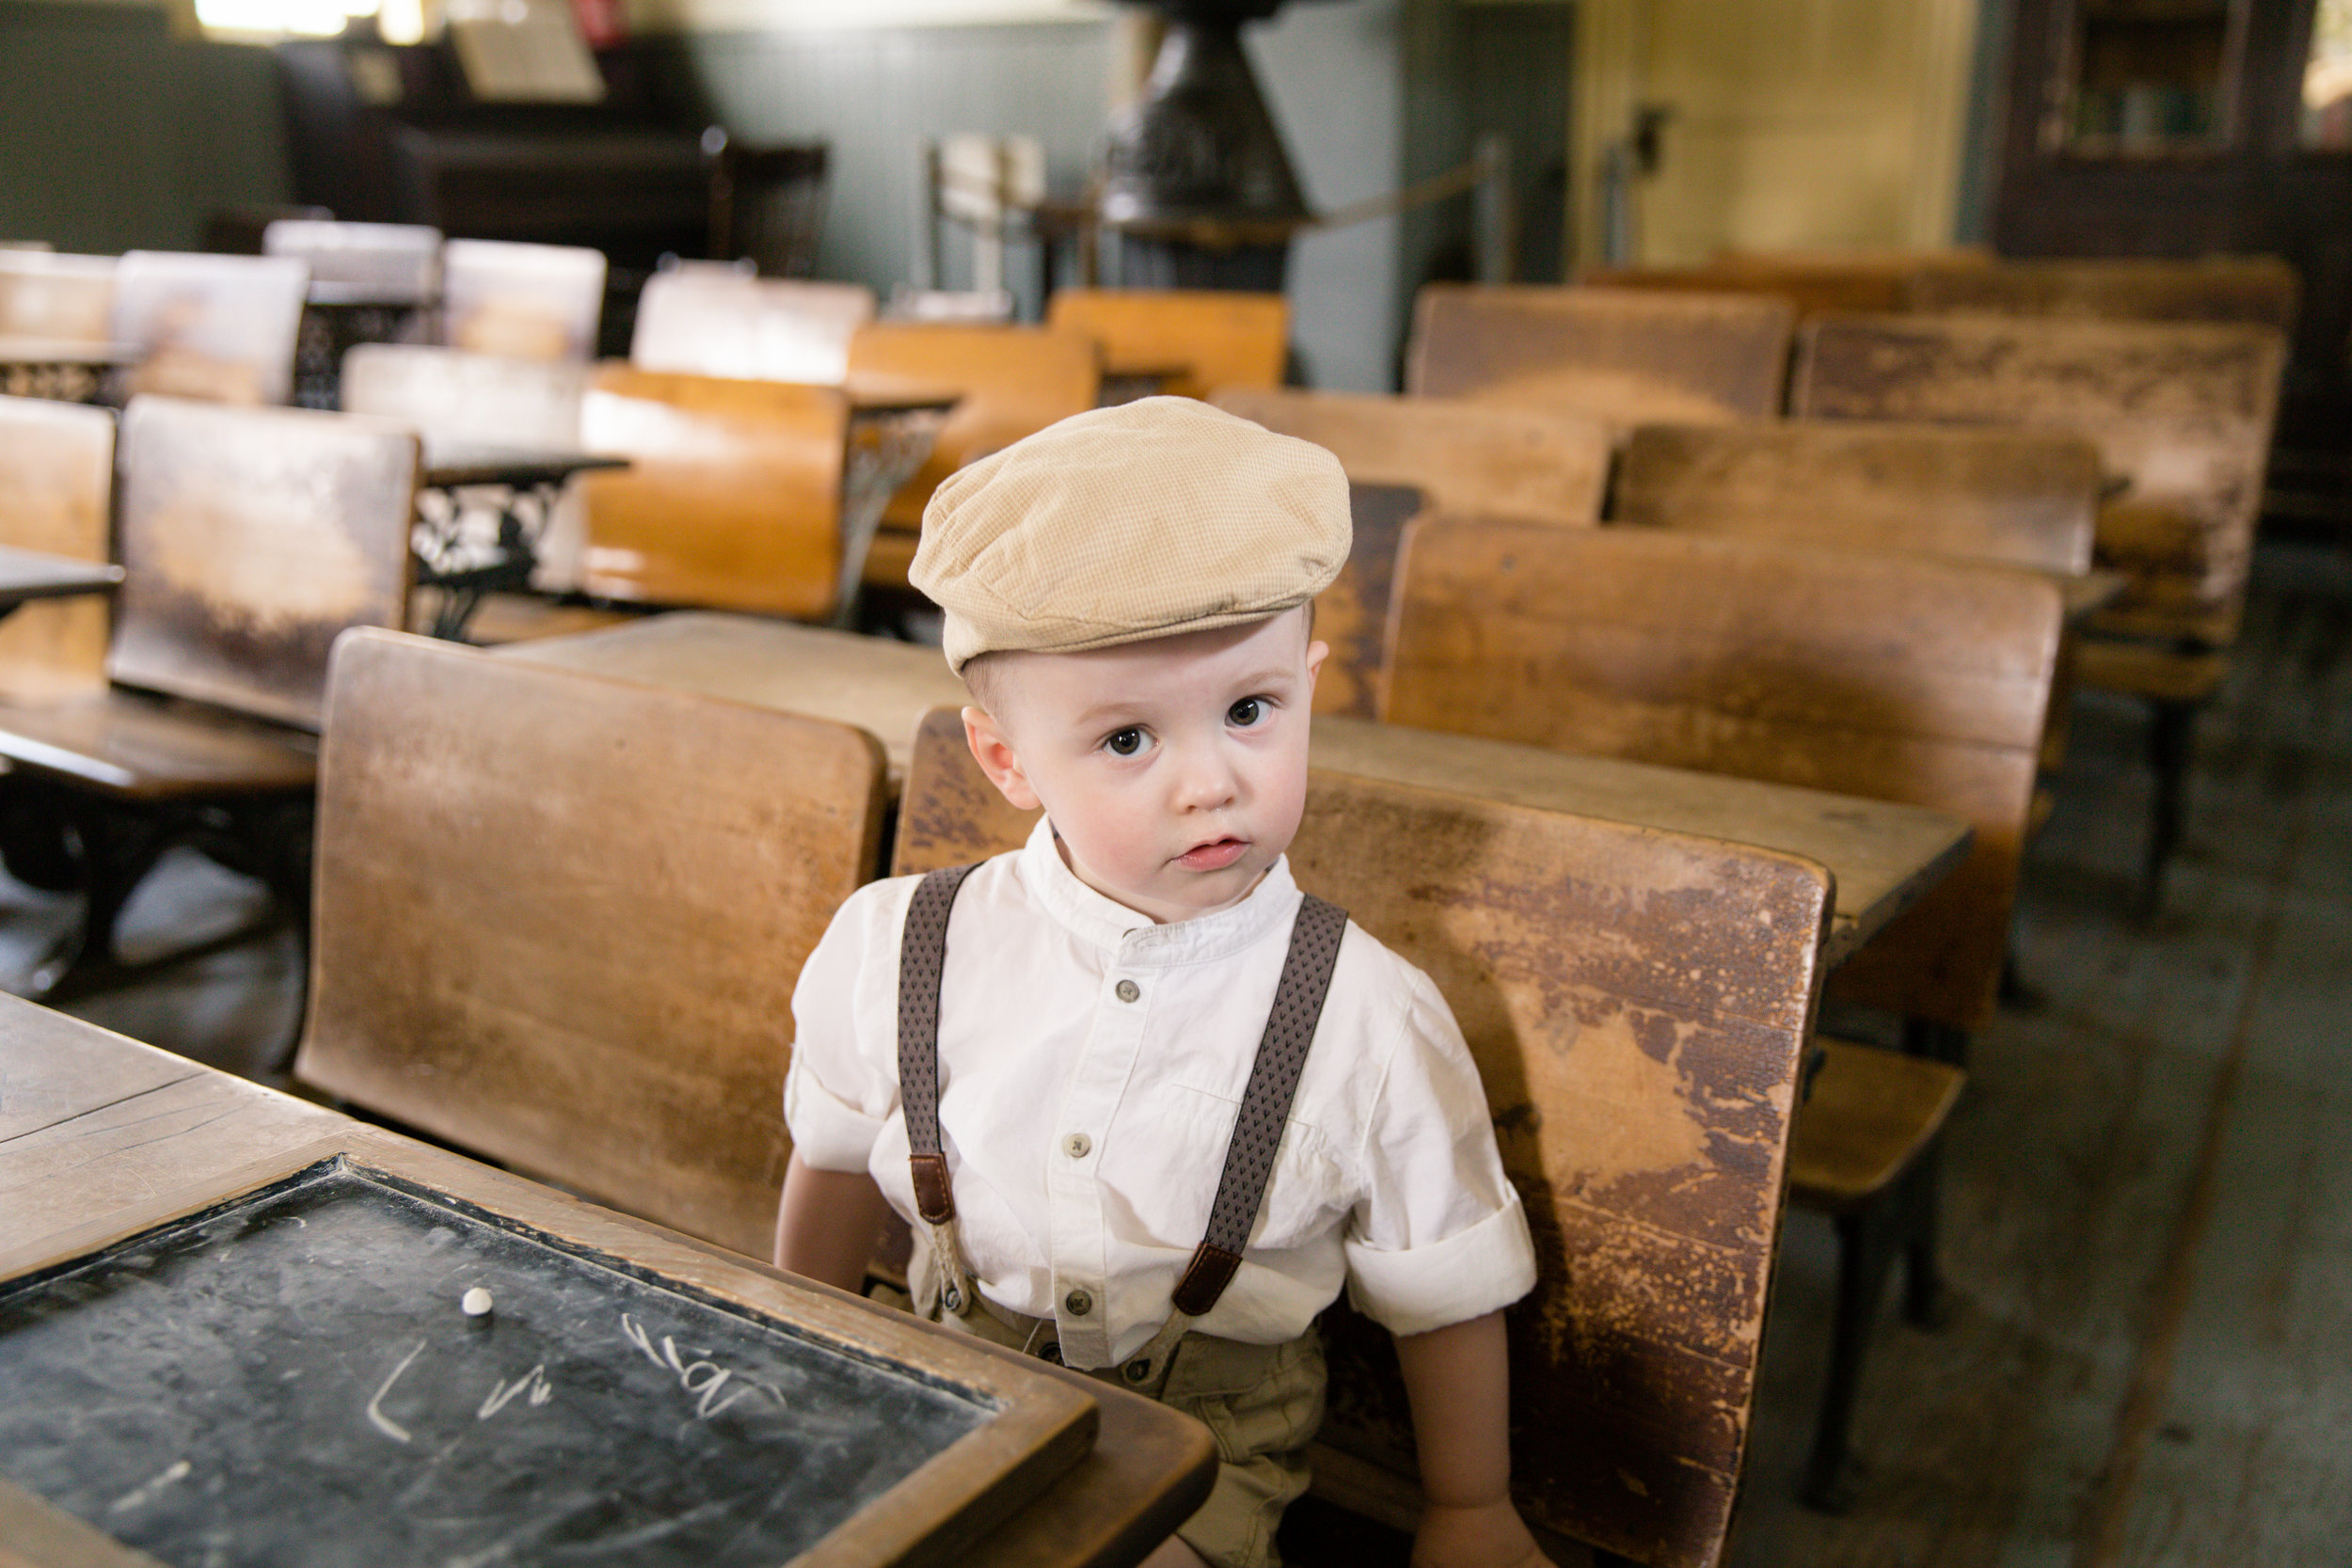 Little boy in an old style school looking curiously at the camera. Calgary photographer. Milashka Photography